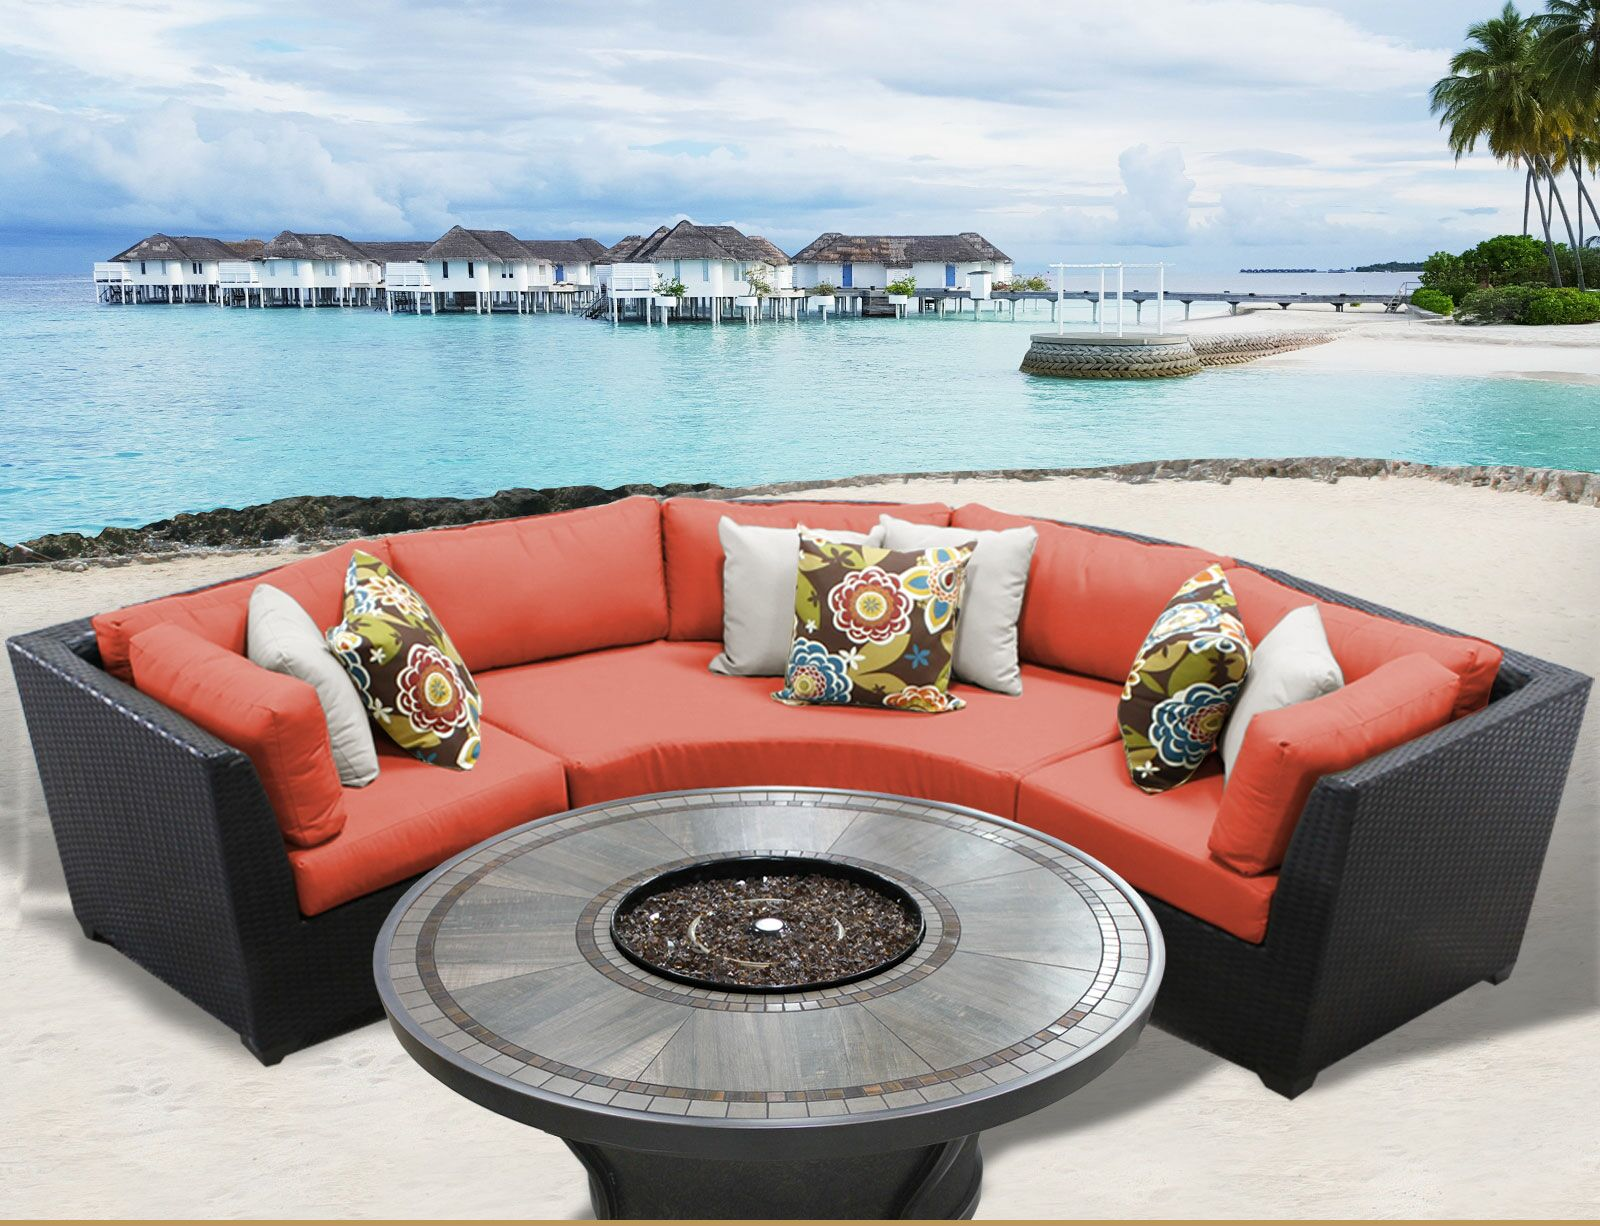 Barbados 4 Piece Rattan Sectional Set with Cushions Cushion Color: Tangerine